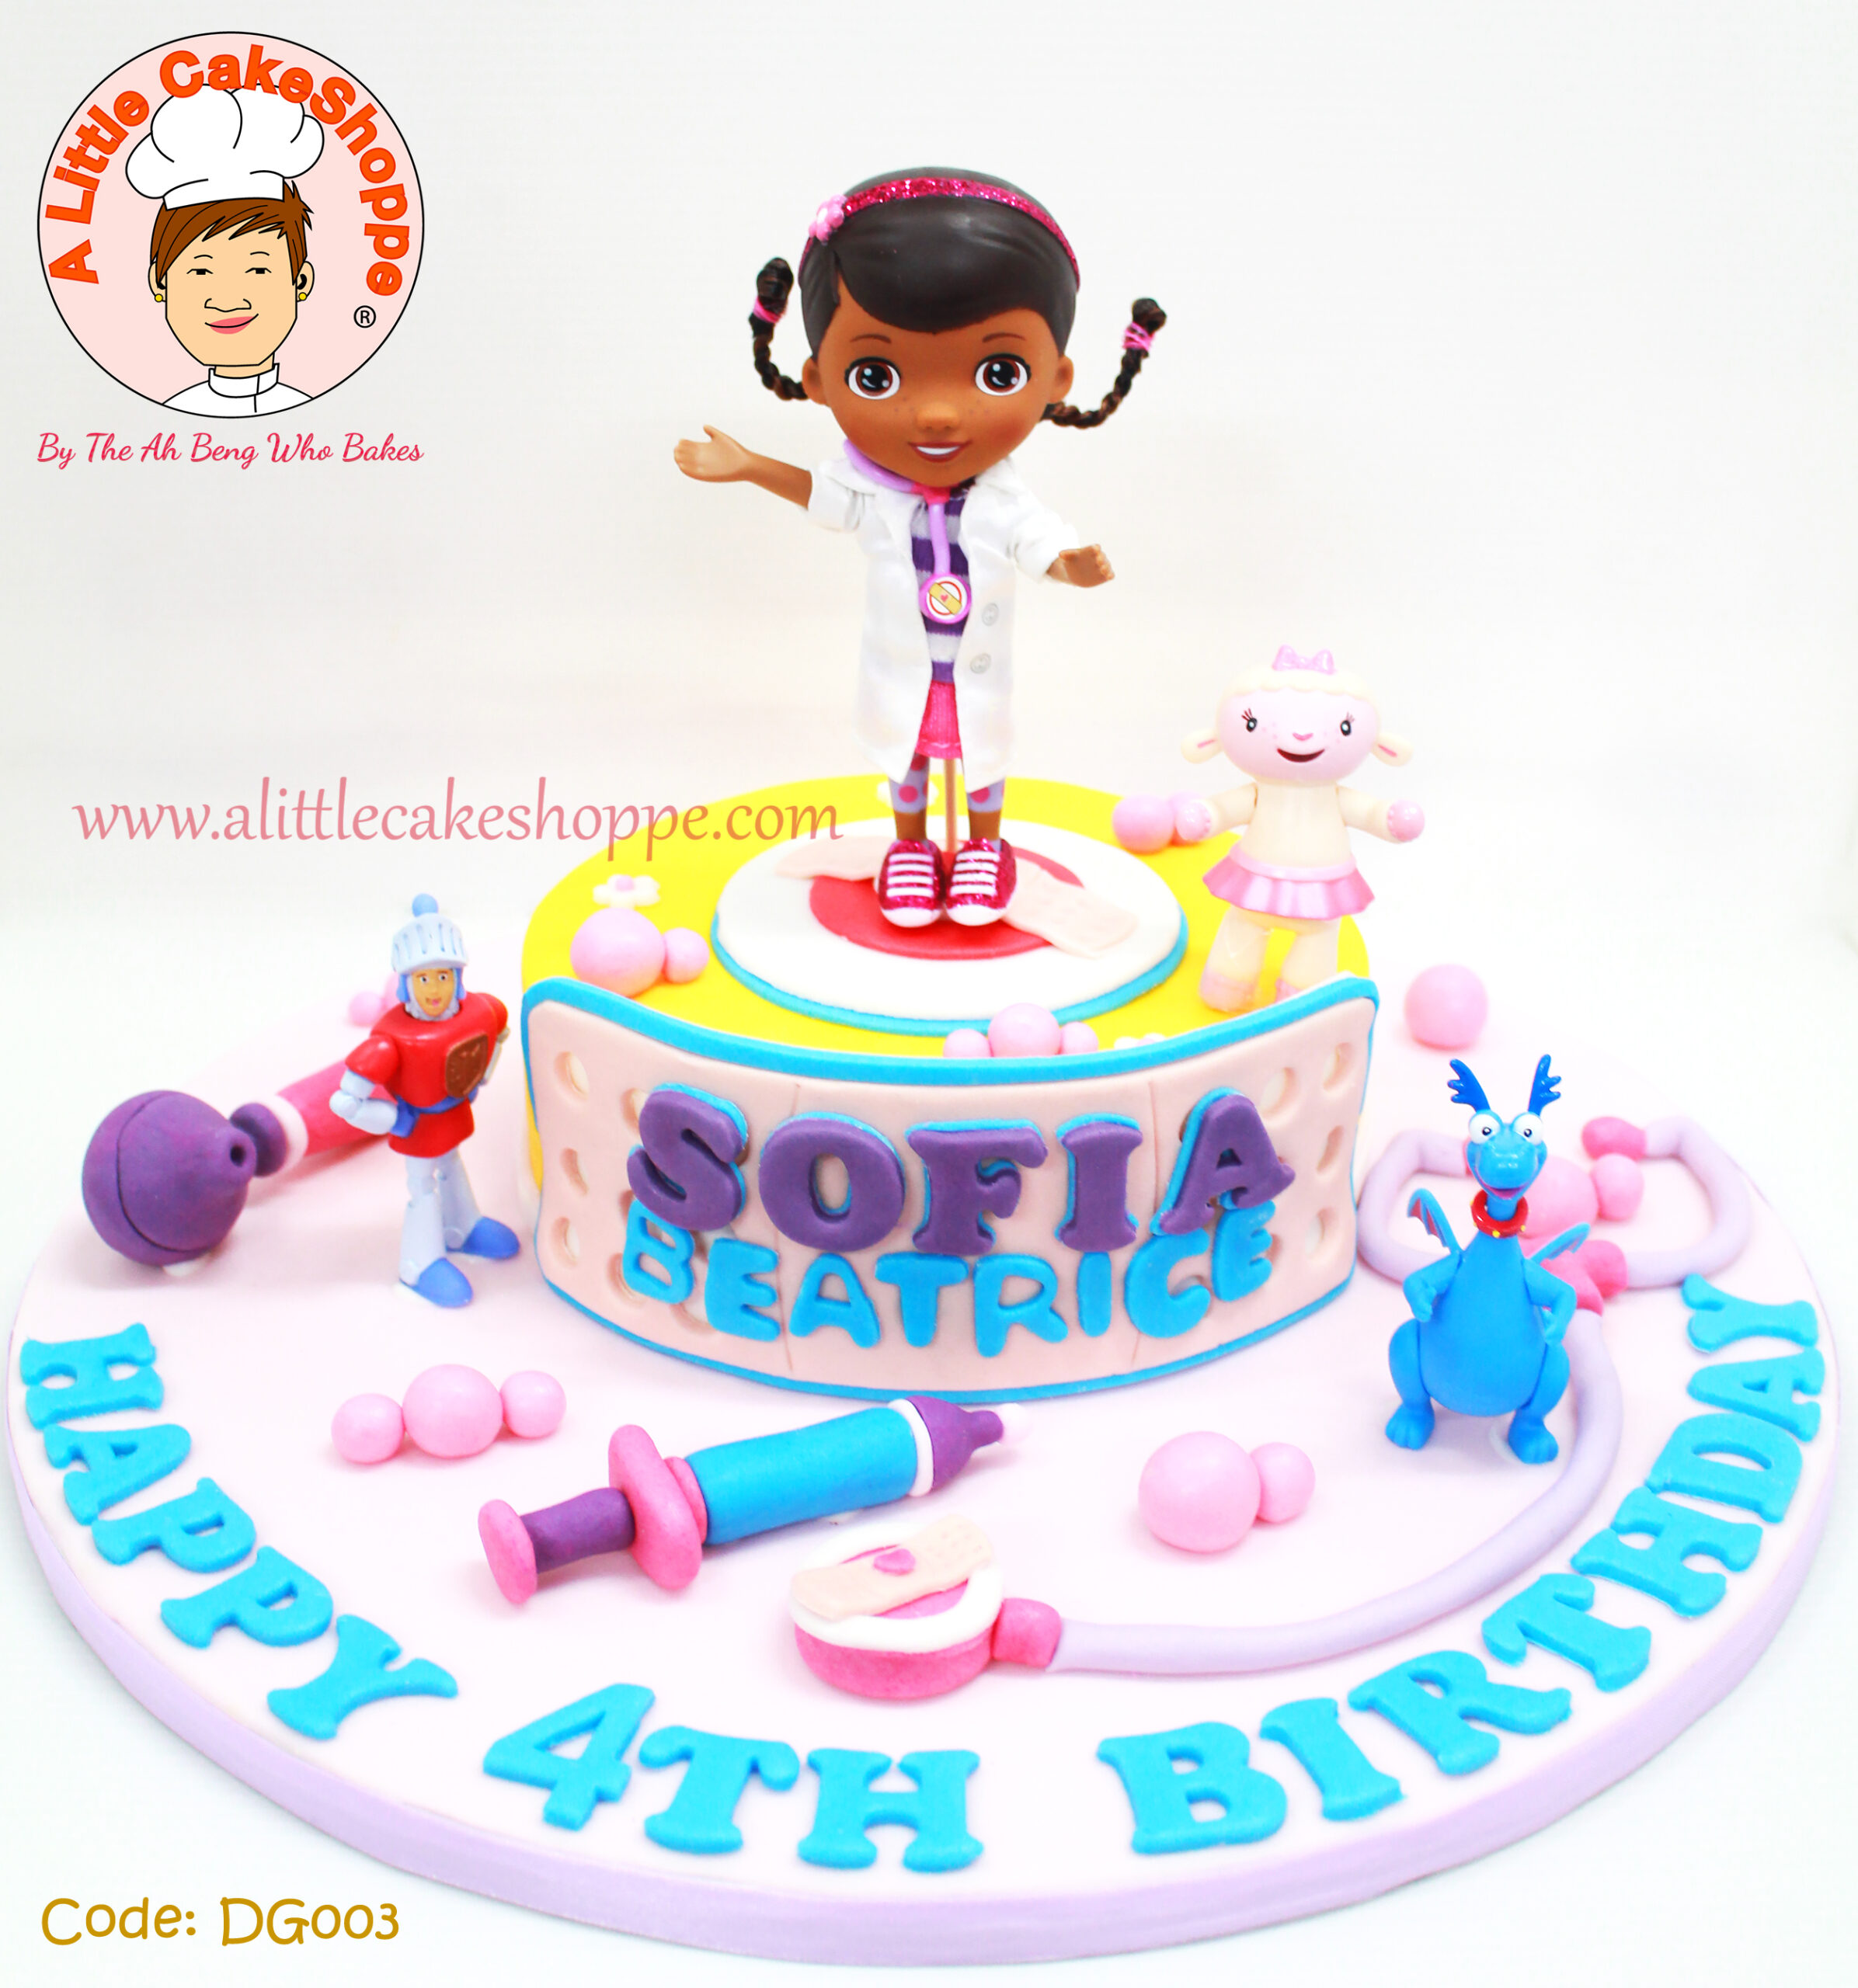 Best Customised Cake Shop Singapore custom cake 2D 3D birthday cake cupcakes desserts wedding corporate events anniversary 1st birthday 21st birthday fondant fresh cream buttercream cakes alittlecakeshoppe a little cake shoppe compliments review singapore bakers SG cake shop cakeshop ah beng who bakes doc mcstuffin